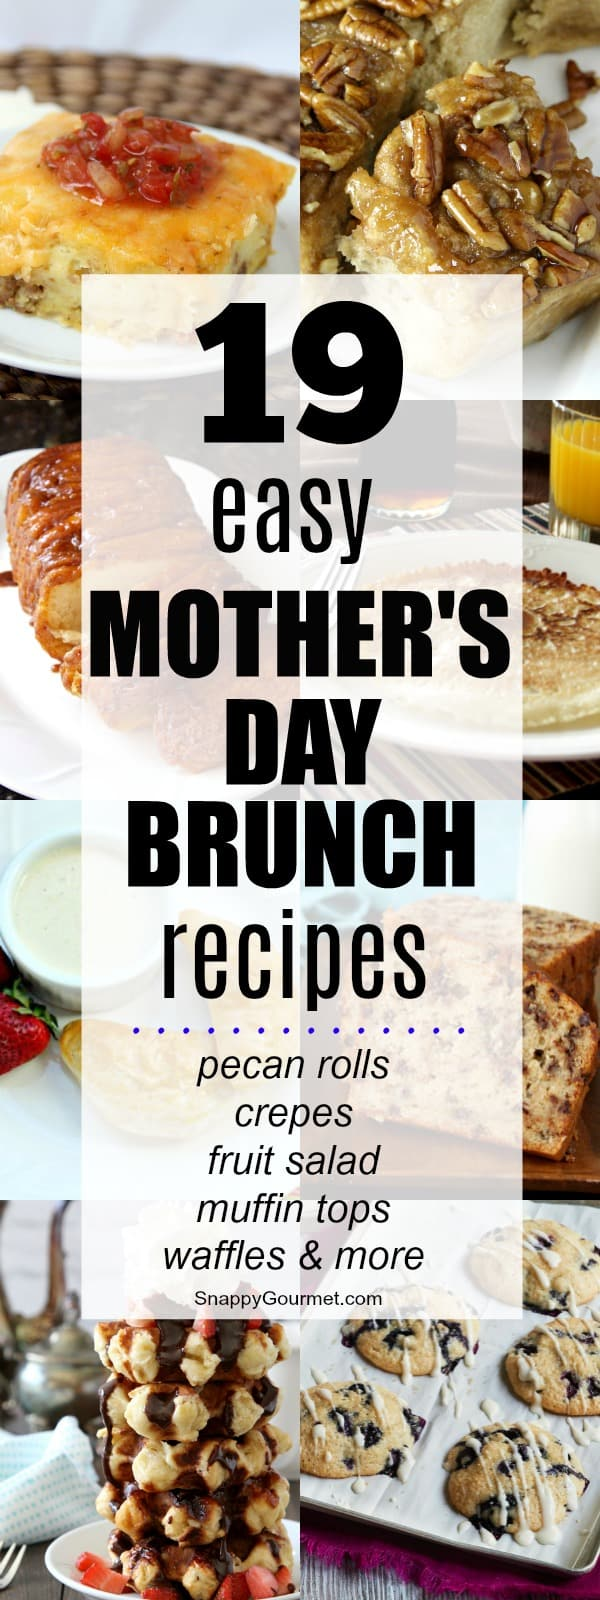 Mother S Day Brunch Recipes Snappy Gourmet